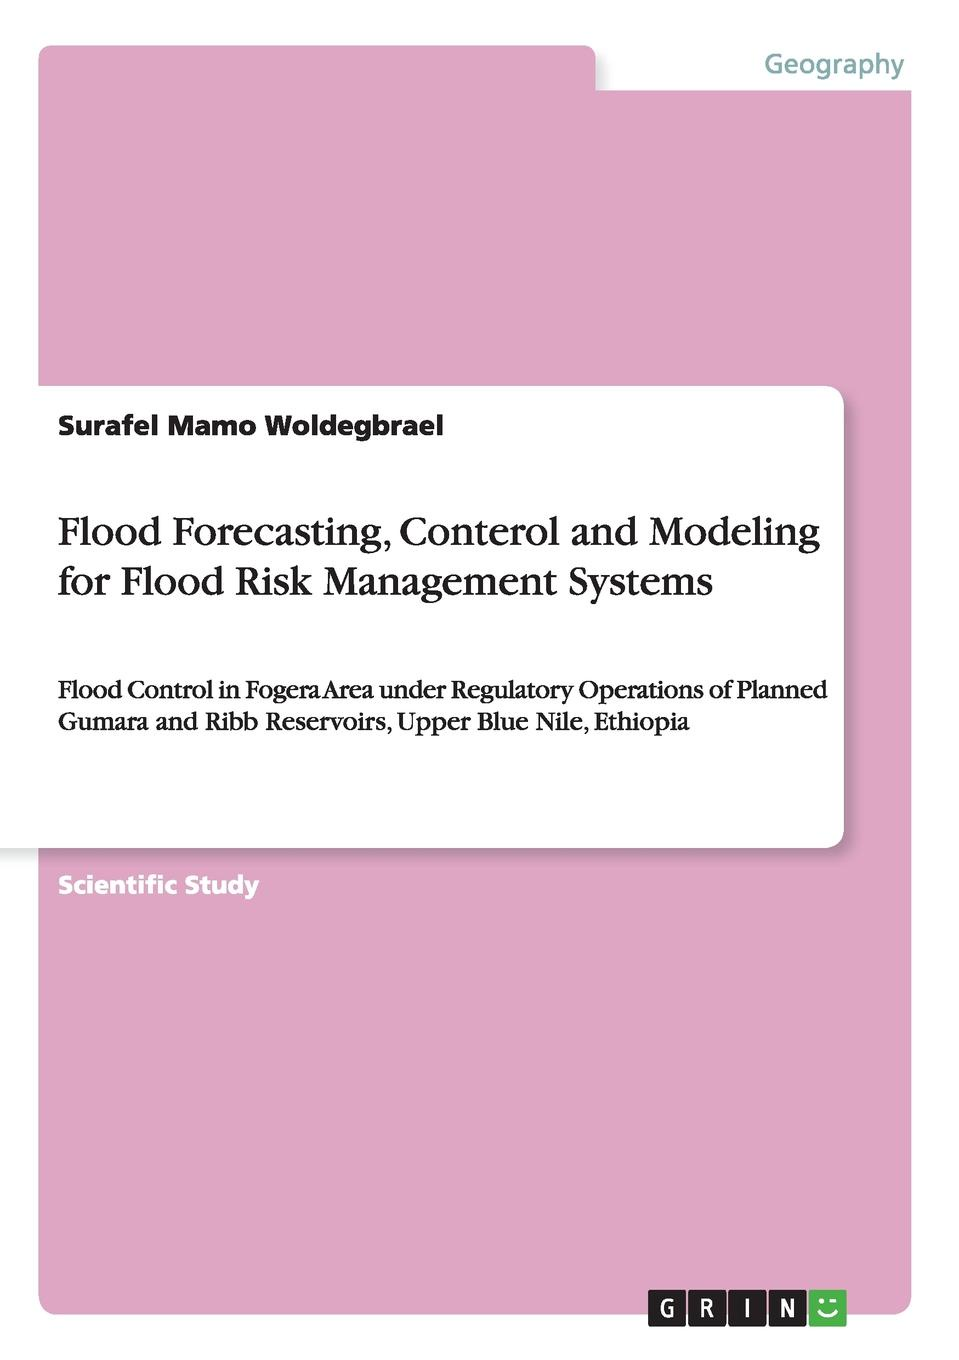 Surafel Mamo Woldegbrael Flood Forecasting, Conterol and Modeling for Flood Risk Management Systems недорго, оригинальная цена